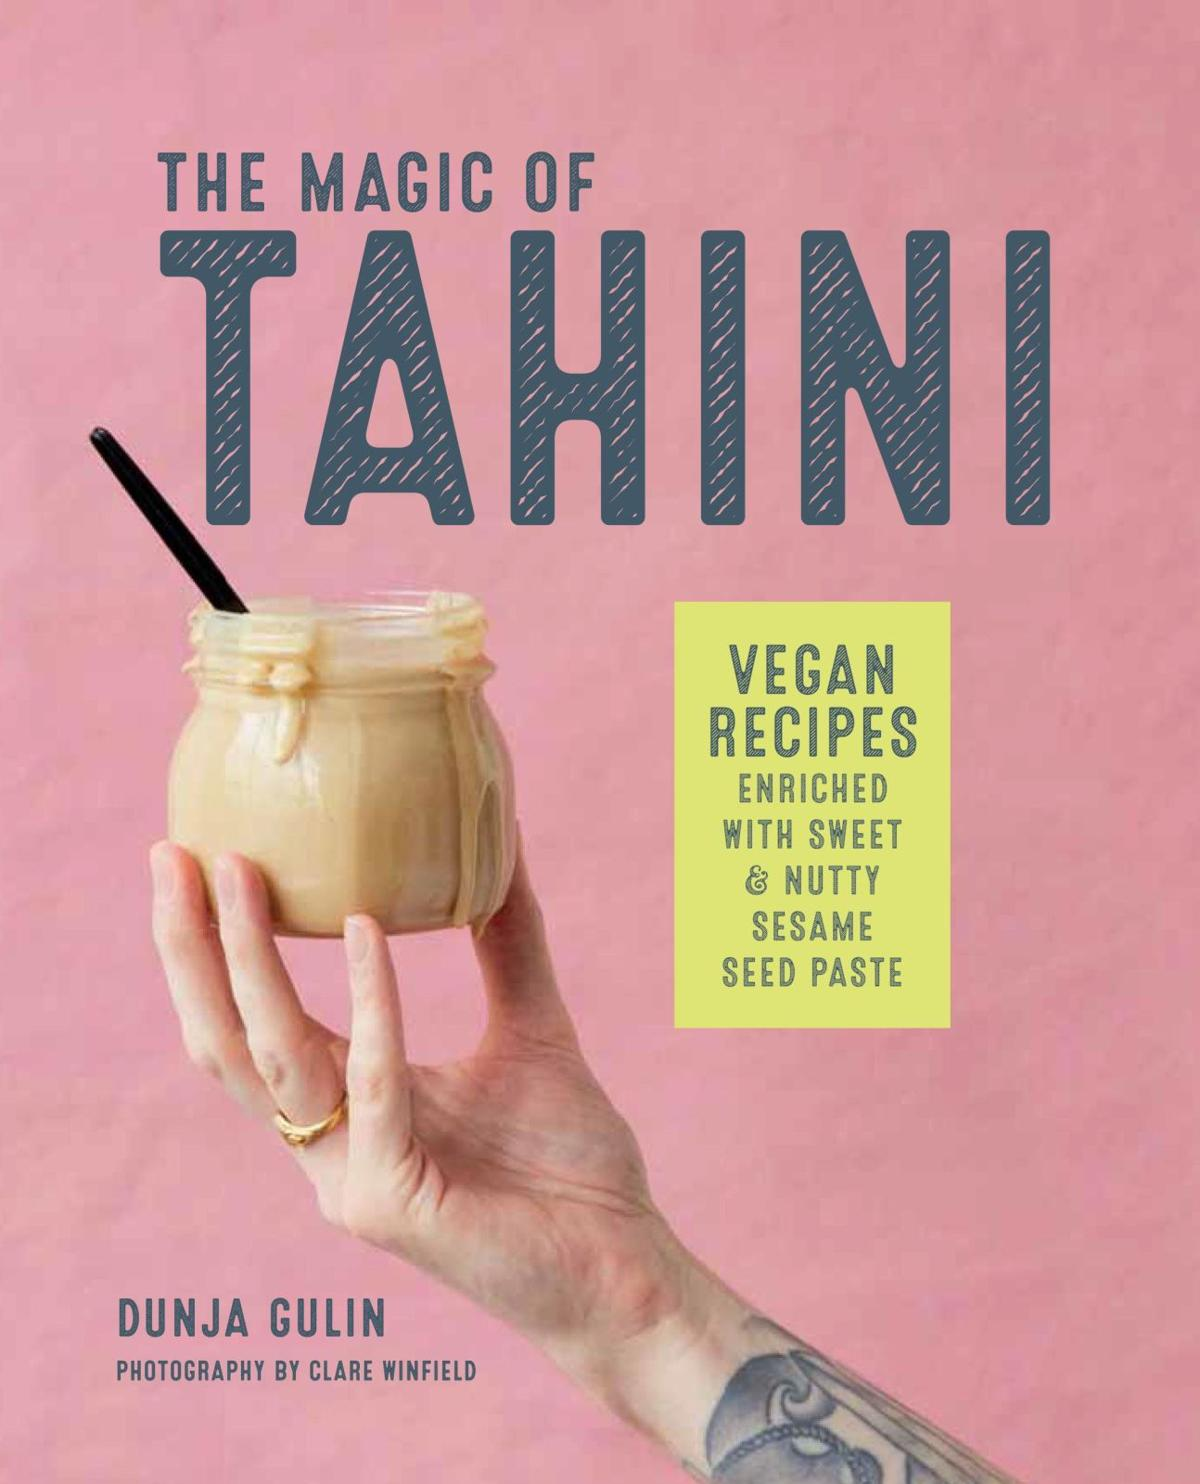 Stephen Fries: Tahini's savory-sweet, nutty taste can be used to enhance a wide range of recipes